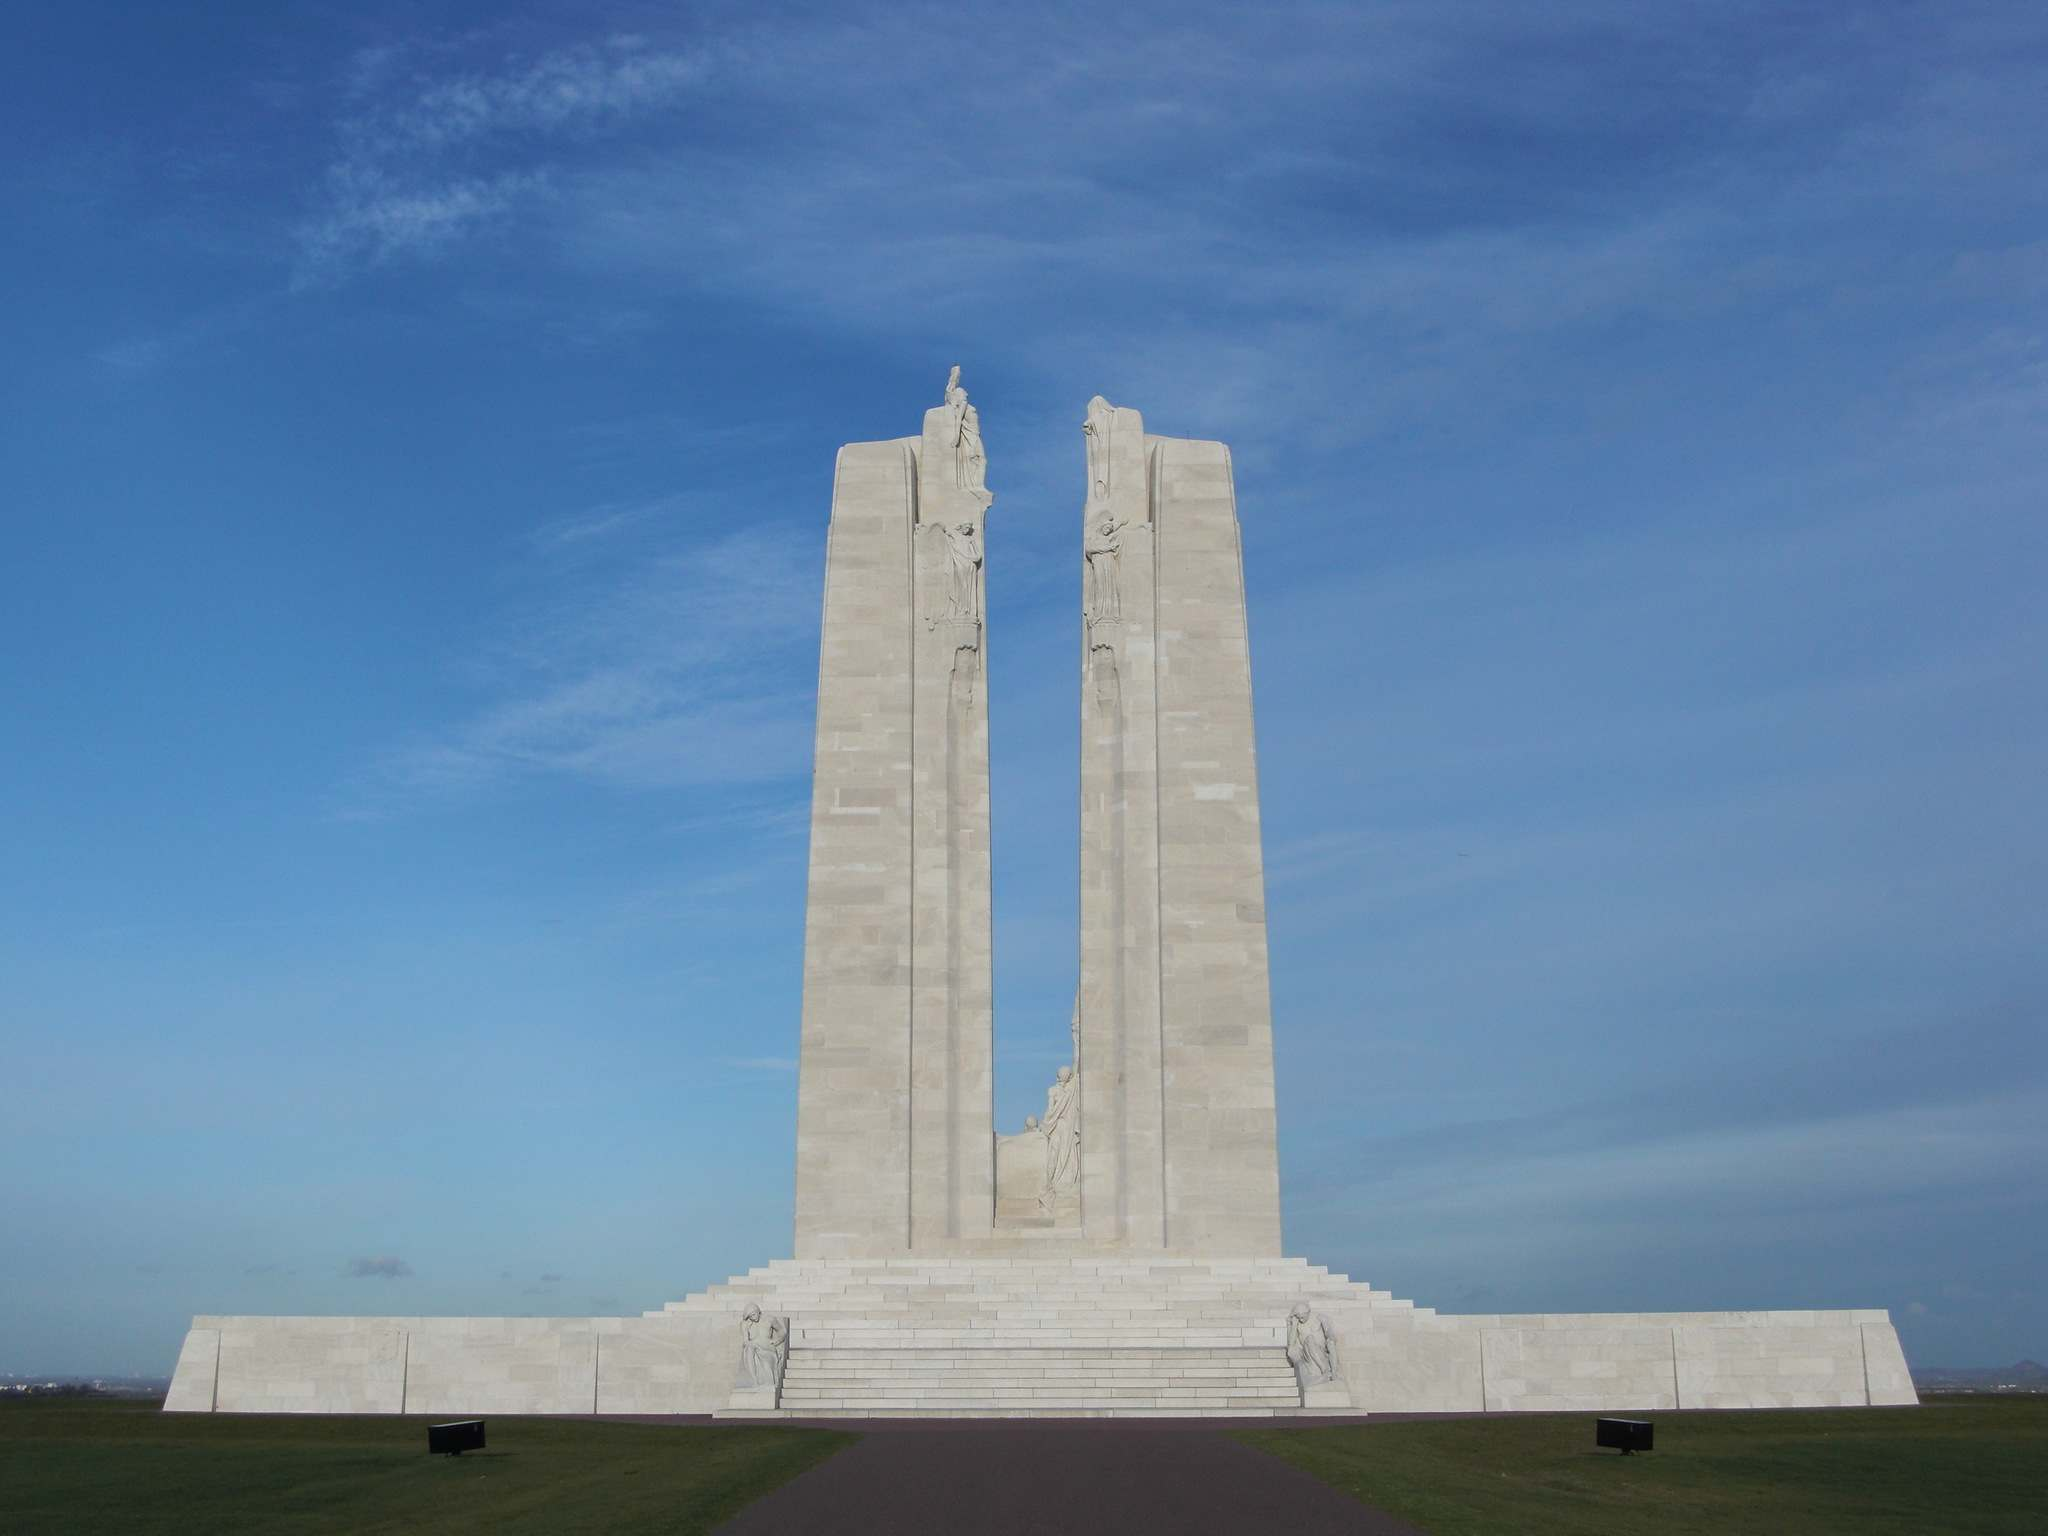 Ron Pradinuk / Winnipeg Free Press</p></p><p>The Canadian National Vimy Memorial is a memorial site in France dedicated to the memory of Canadian Expeditionary Force members killed during the First World War.</p>